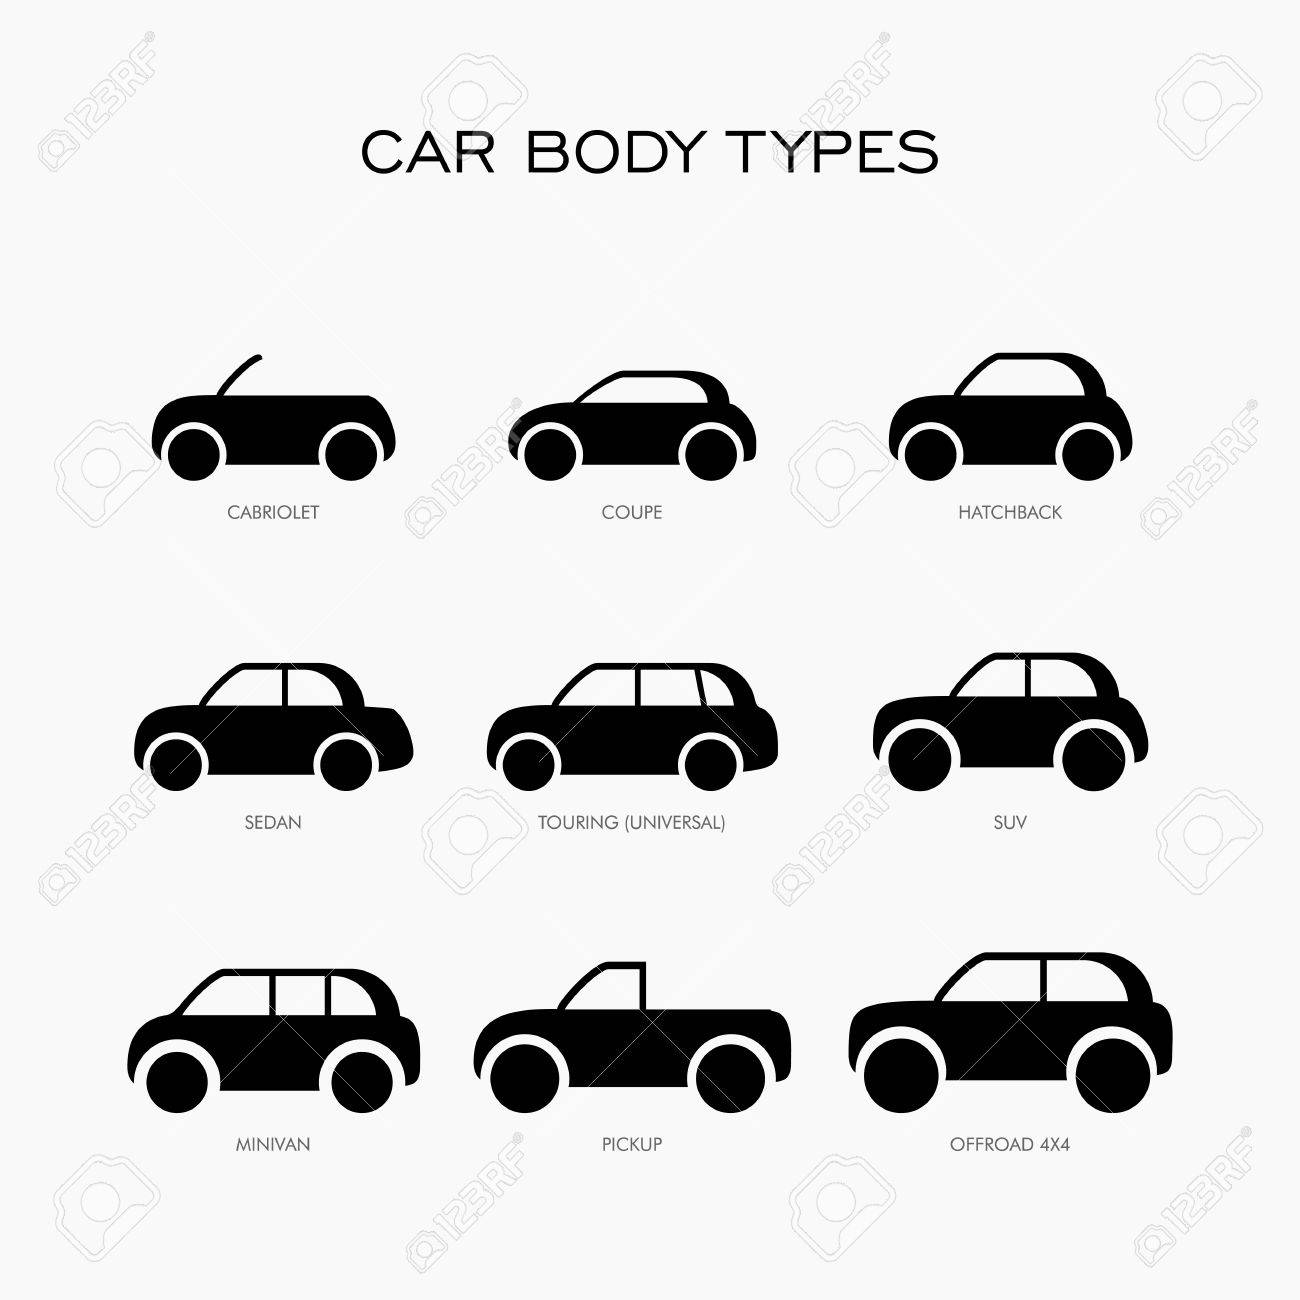 Vehicle Body Types >> Car Body Type Vector Illustration Icon Royalty Free Cliparts